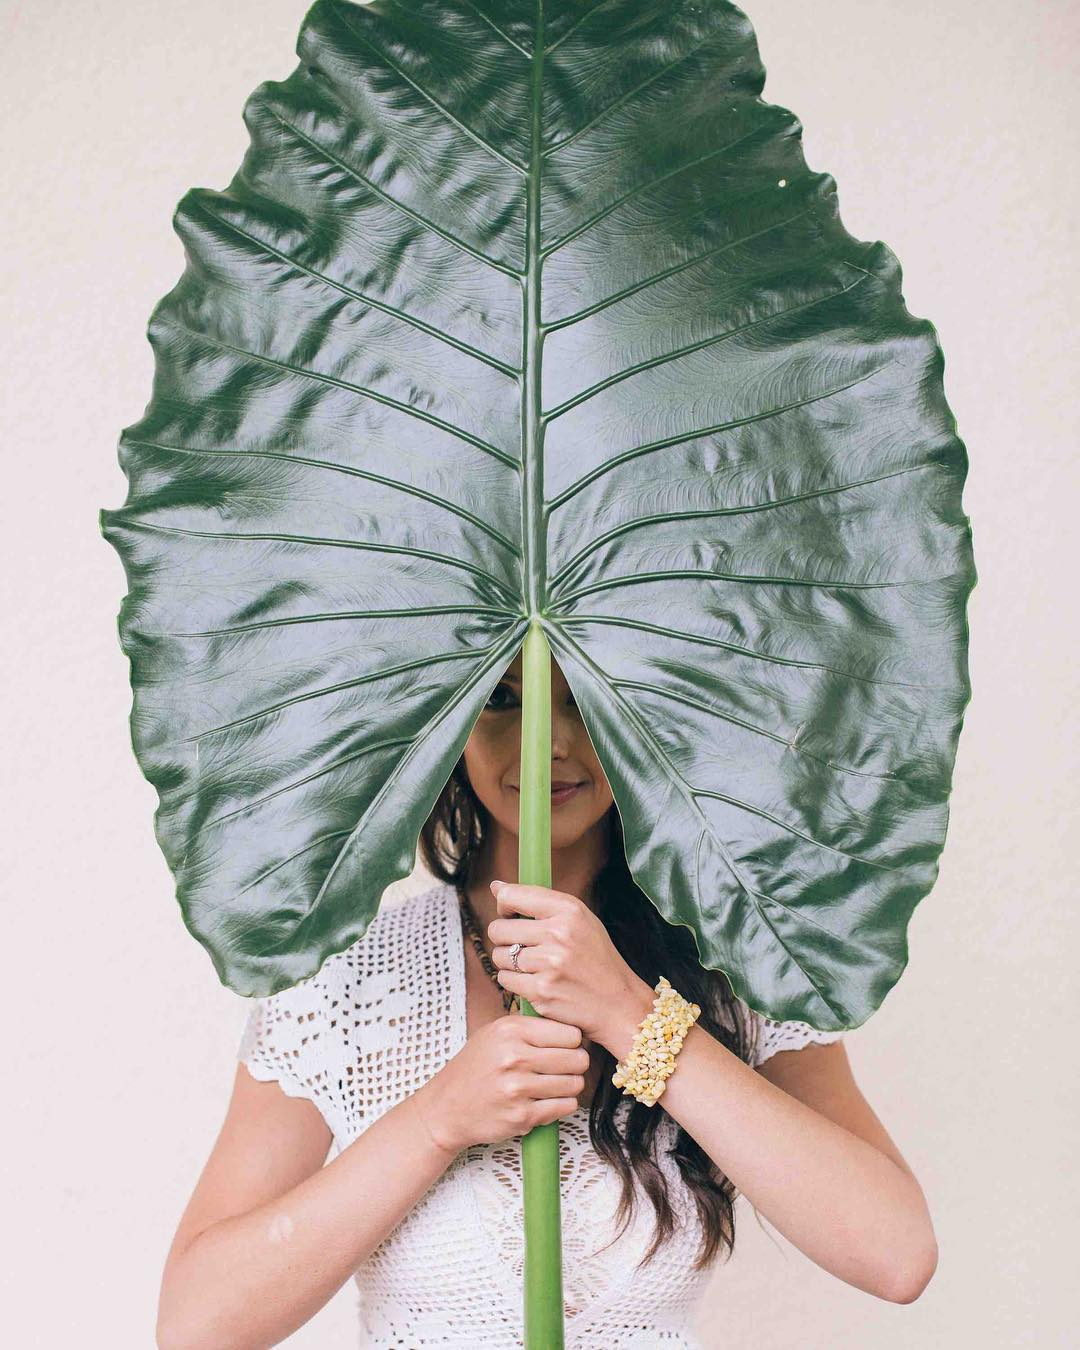 {big leaf} photo | @kate_preftakes . . . #clare #mymuse #tropicals #photoshoot #boho #forfun #peekaboo #lovethis #collaboration #lotusfloraldesigns #weddingflowers #flowerart #alocasia #elephantear